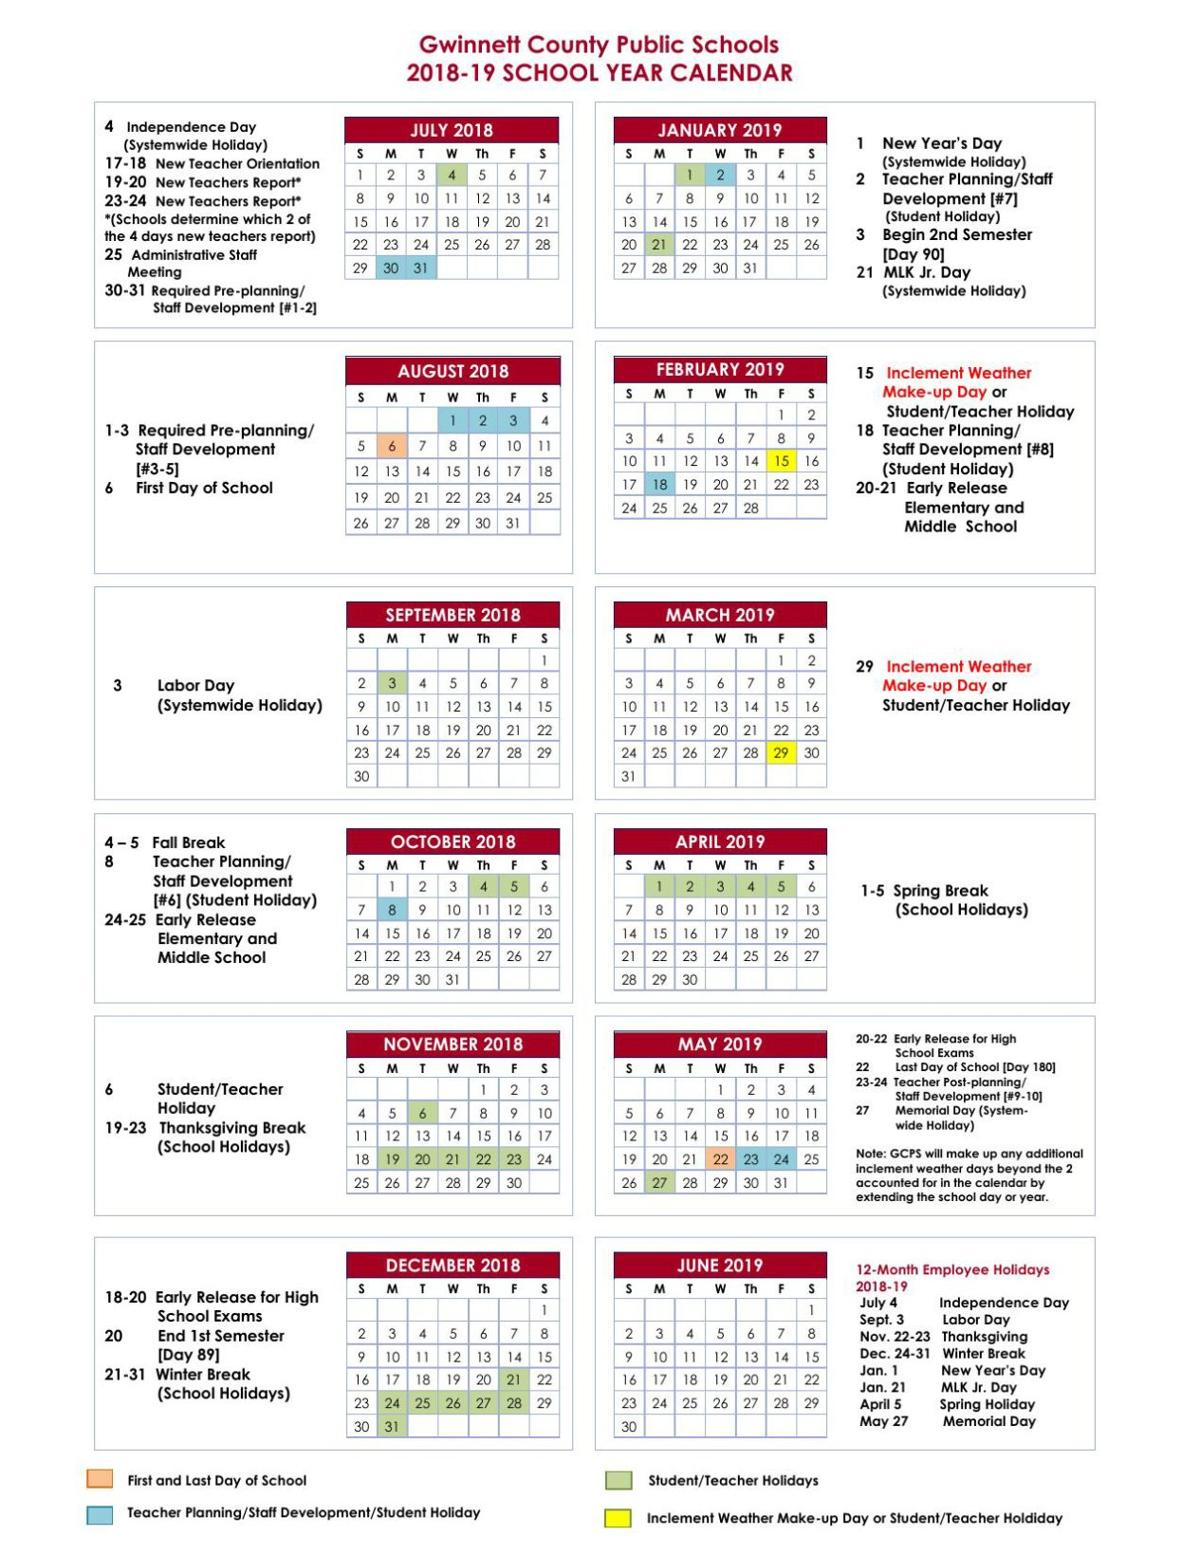 Download PDF GCPS 2018-19 Calendar